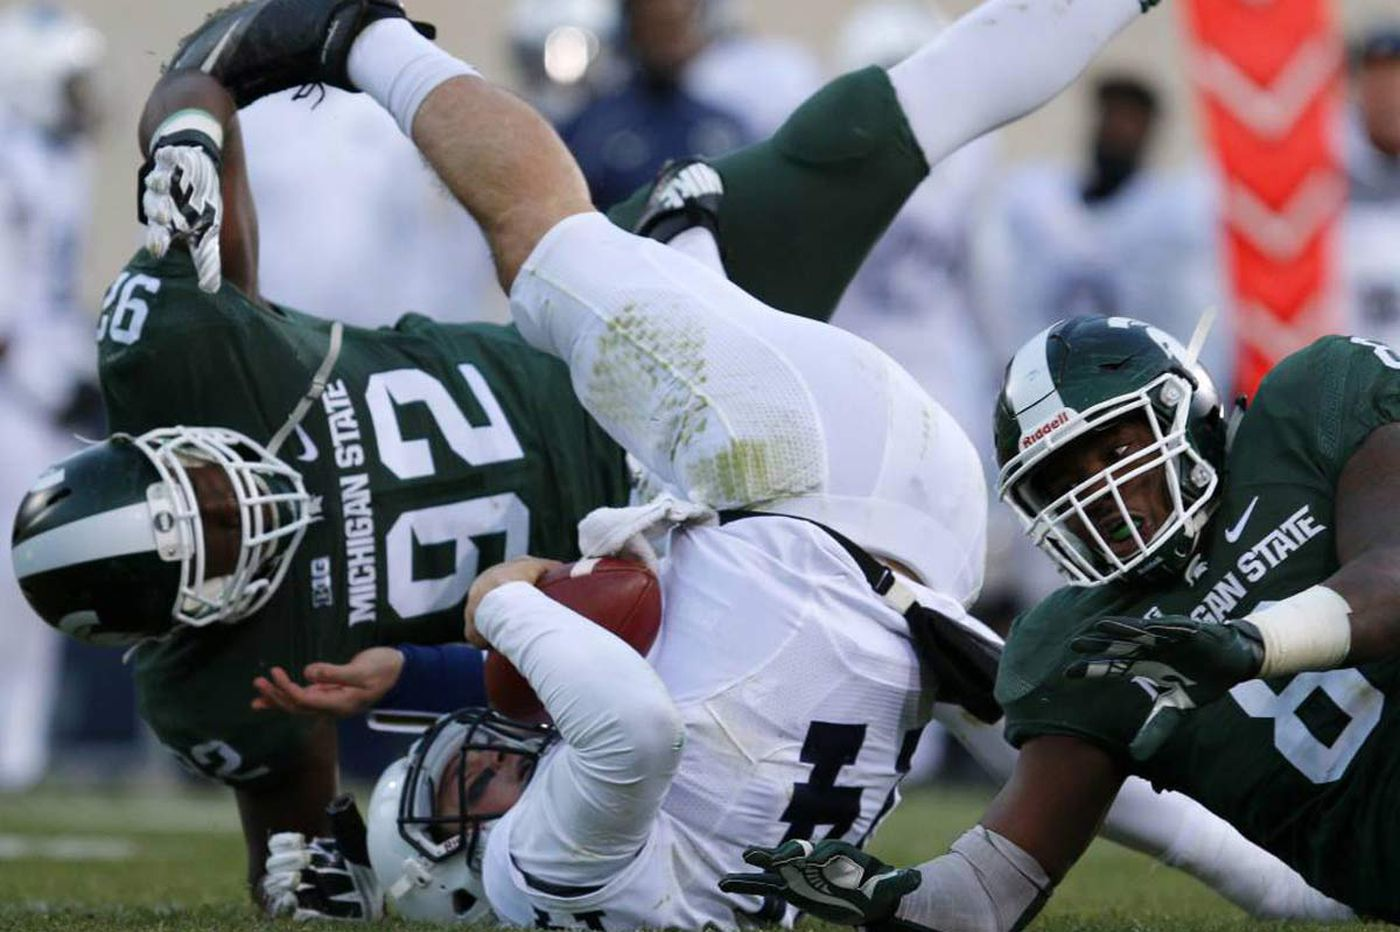 Penn State can't stop Michigan State in second half of 55-16 loss